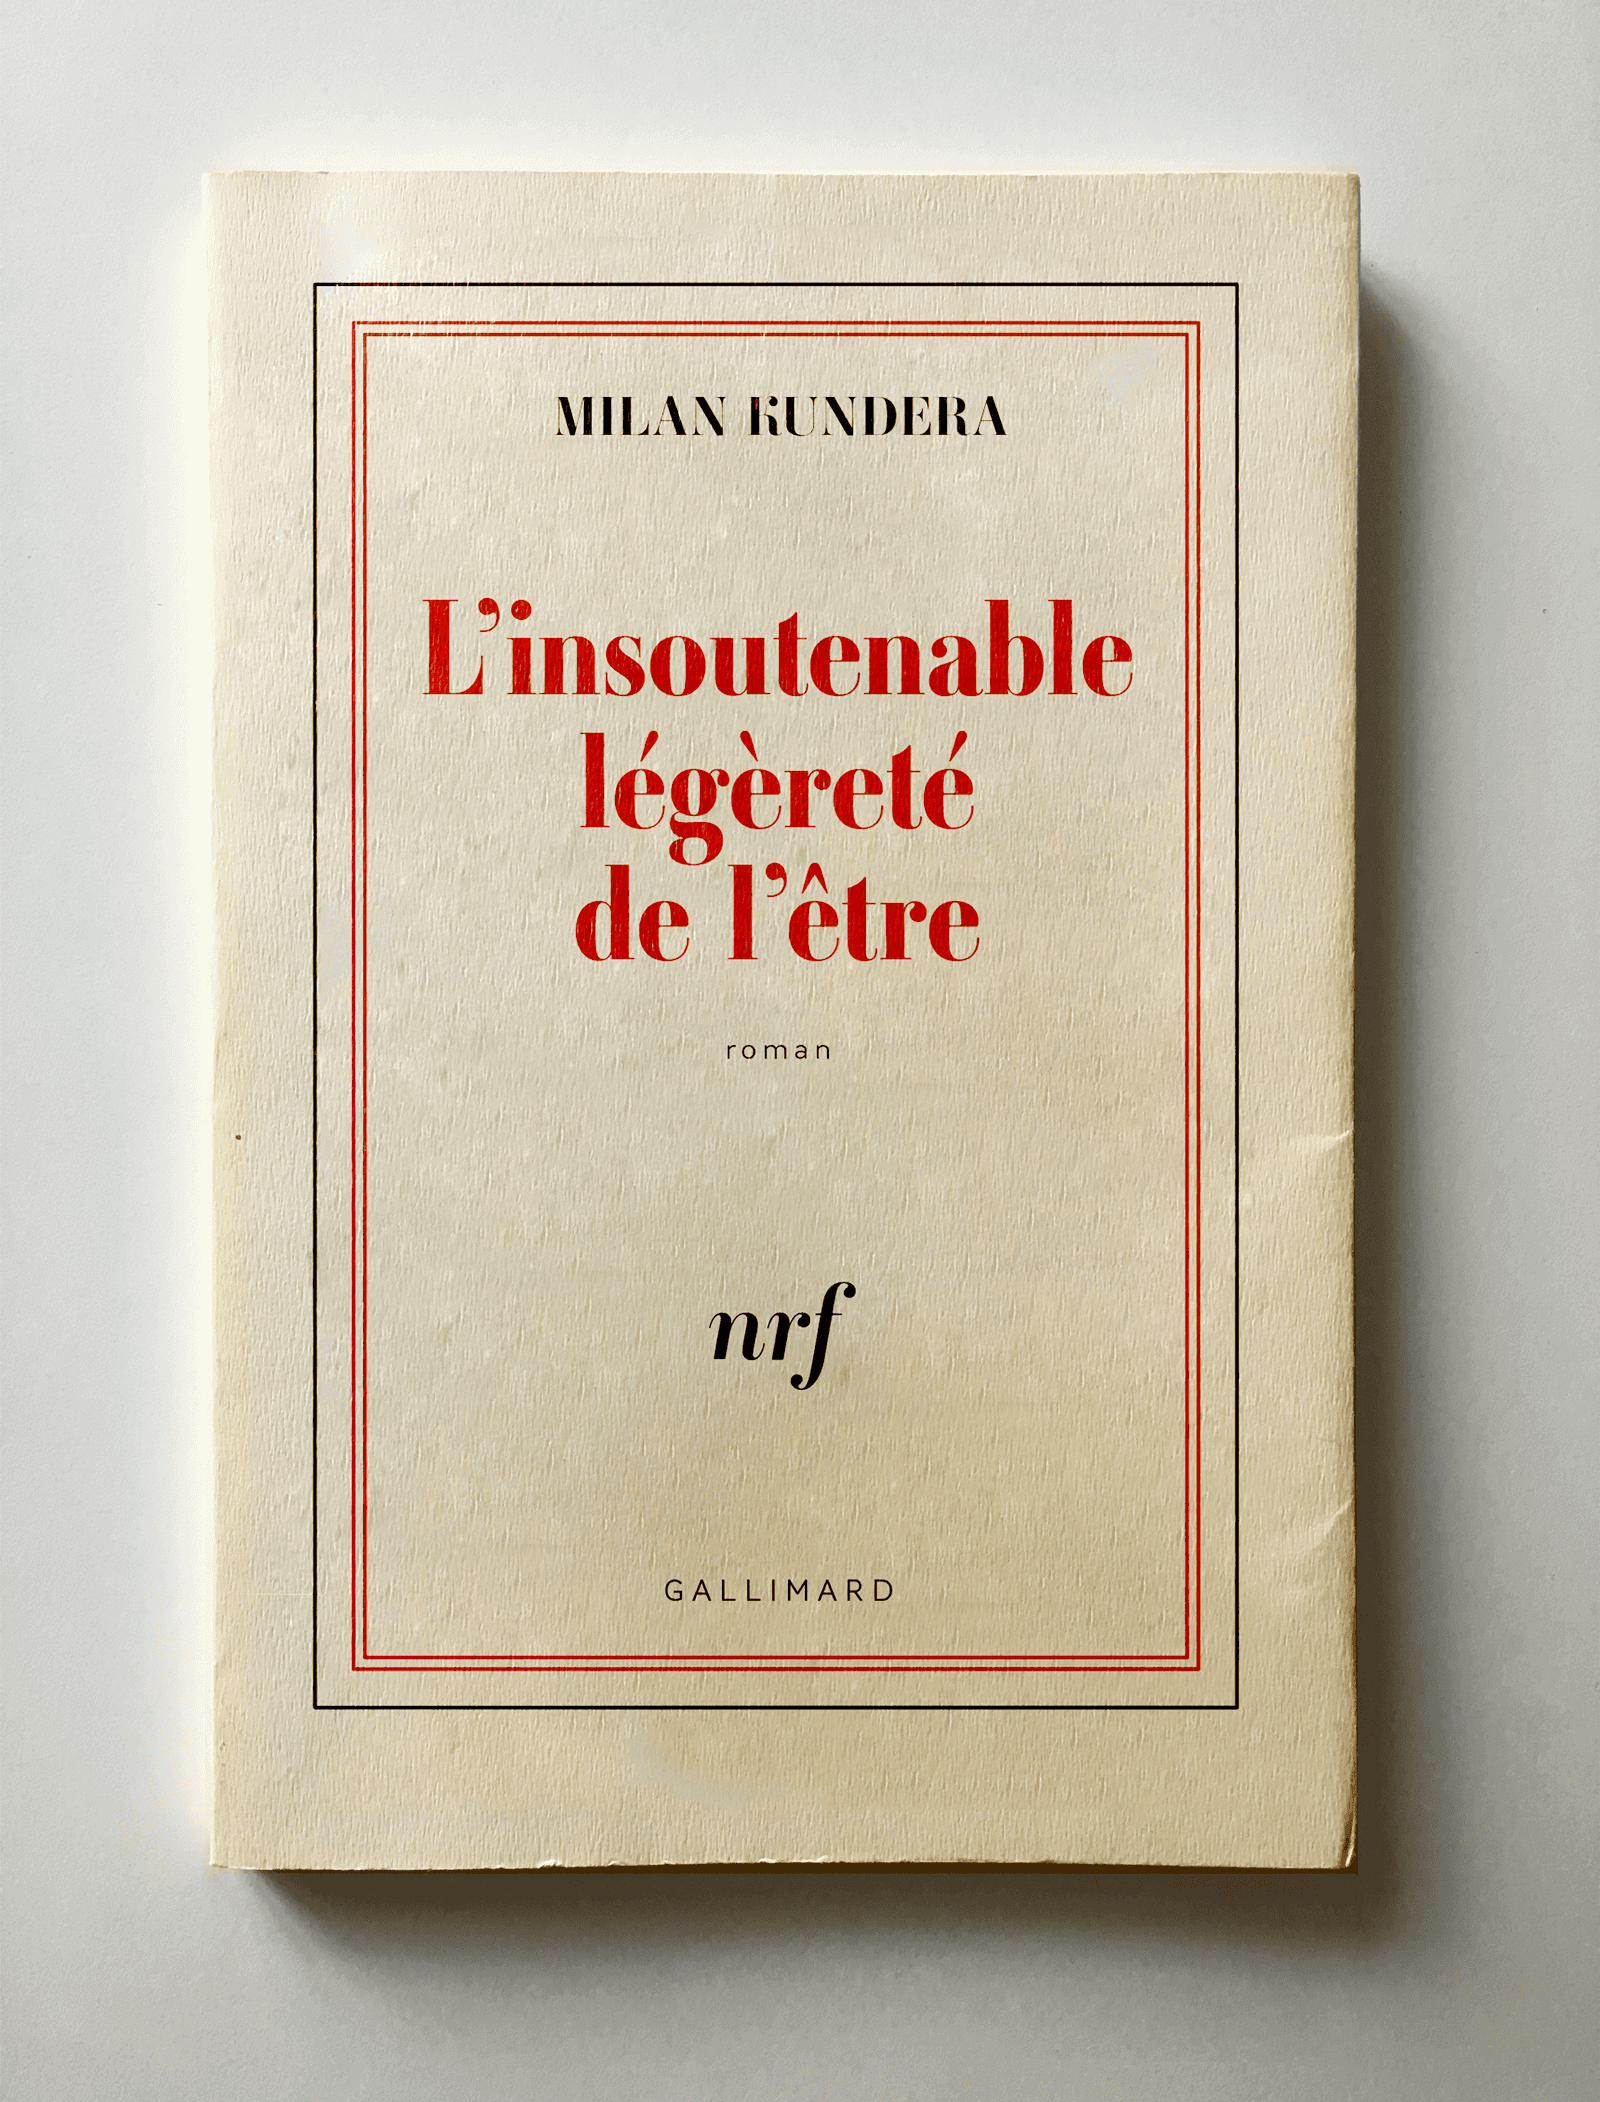 Project: Gallimard Milan Kundera